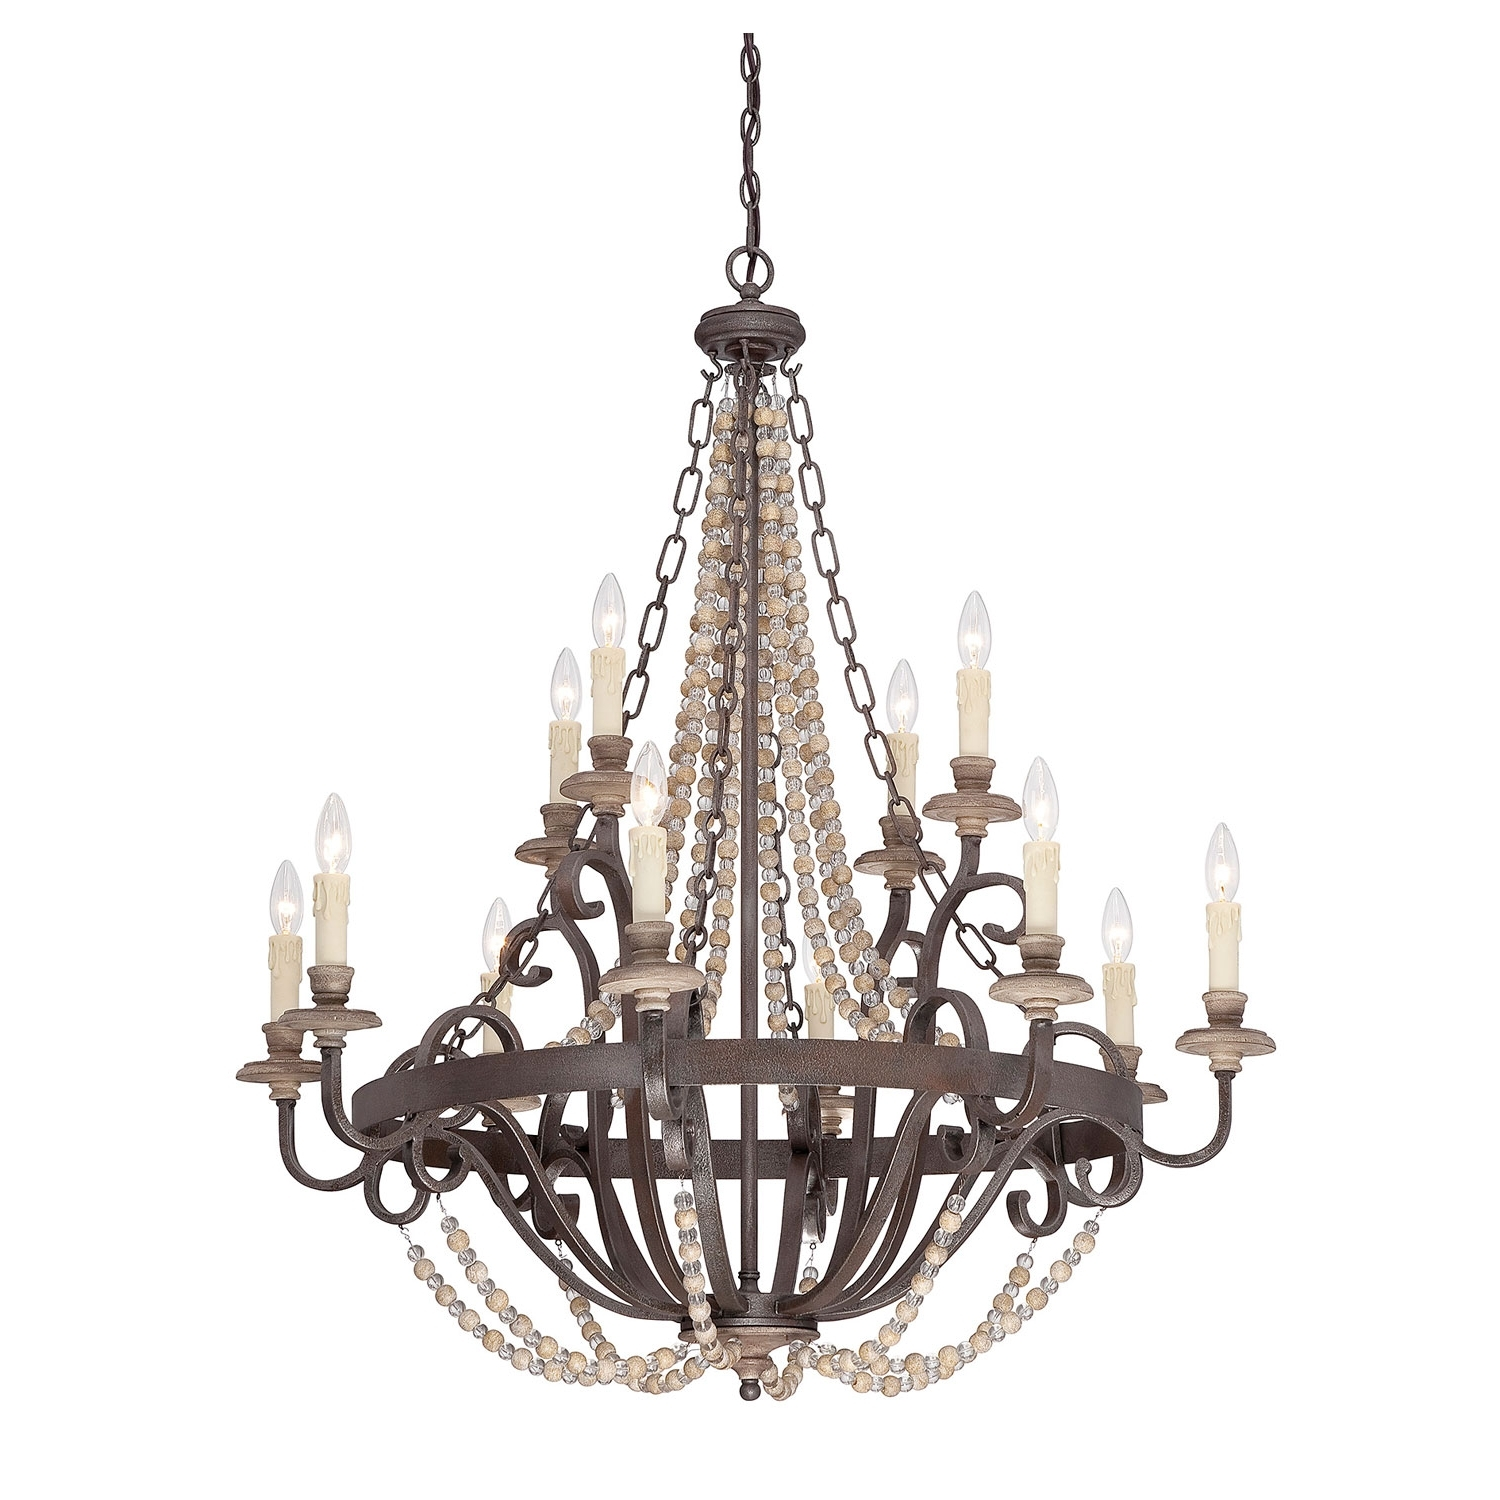 Country Chic Chandelier Within Preferred Light : Chandeliers Made In Usa Crystal Modern Iron Shabby Chic (View 15 of 20)